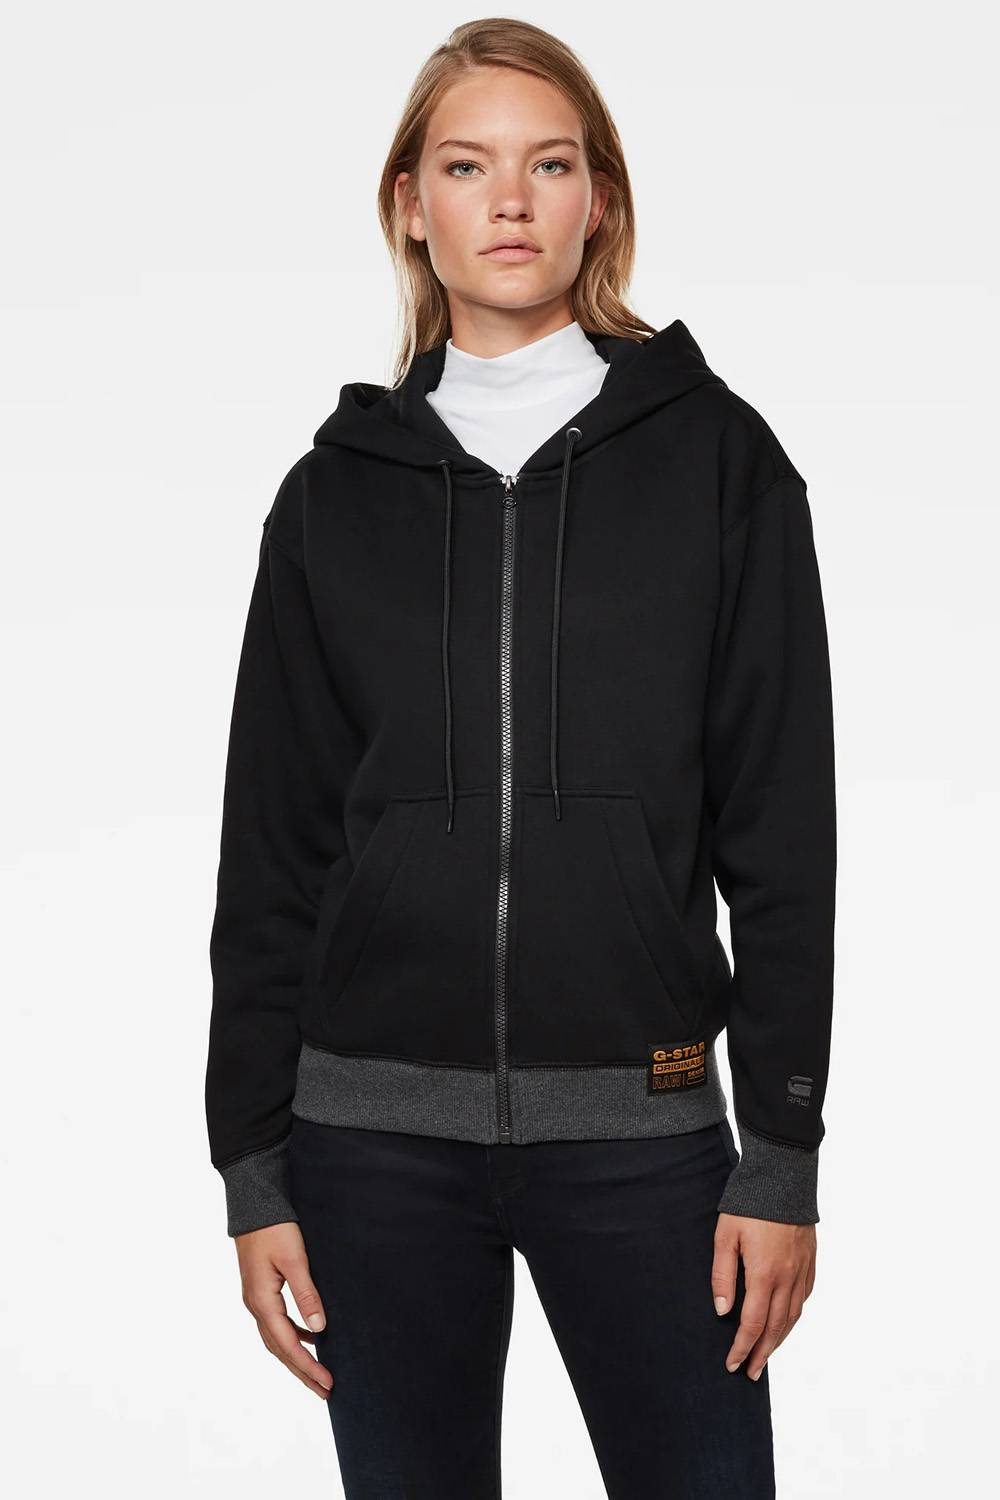 g-star raw sustainable ethical cheap hoodies